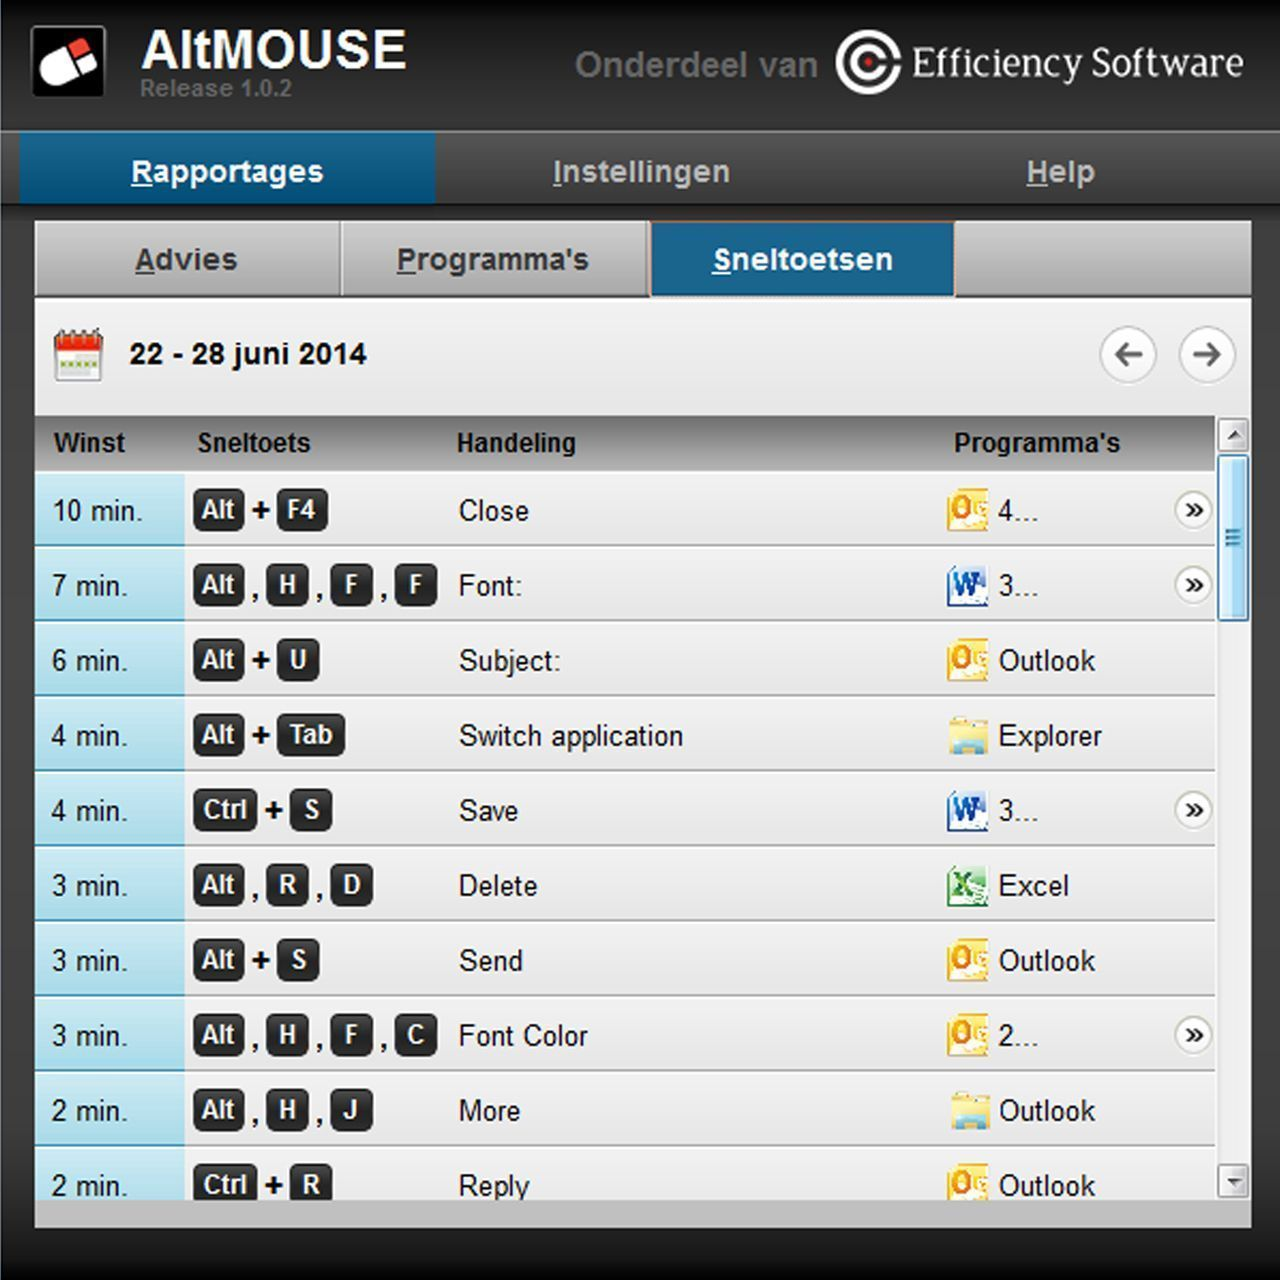 altmouse software arbosoftware ARTNRNNB categorie